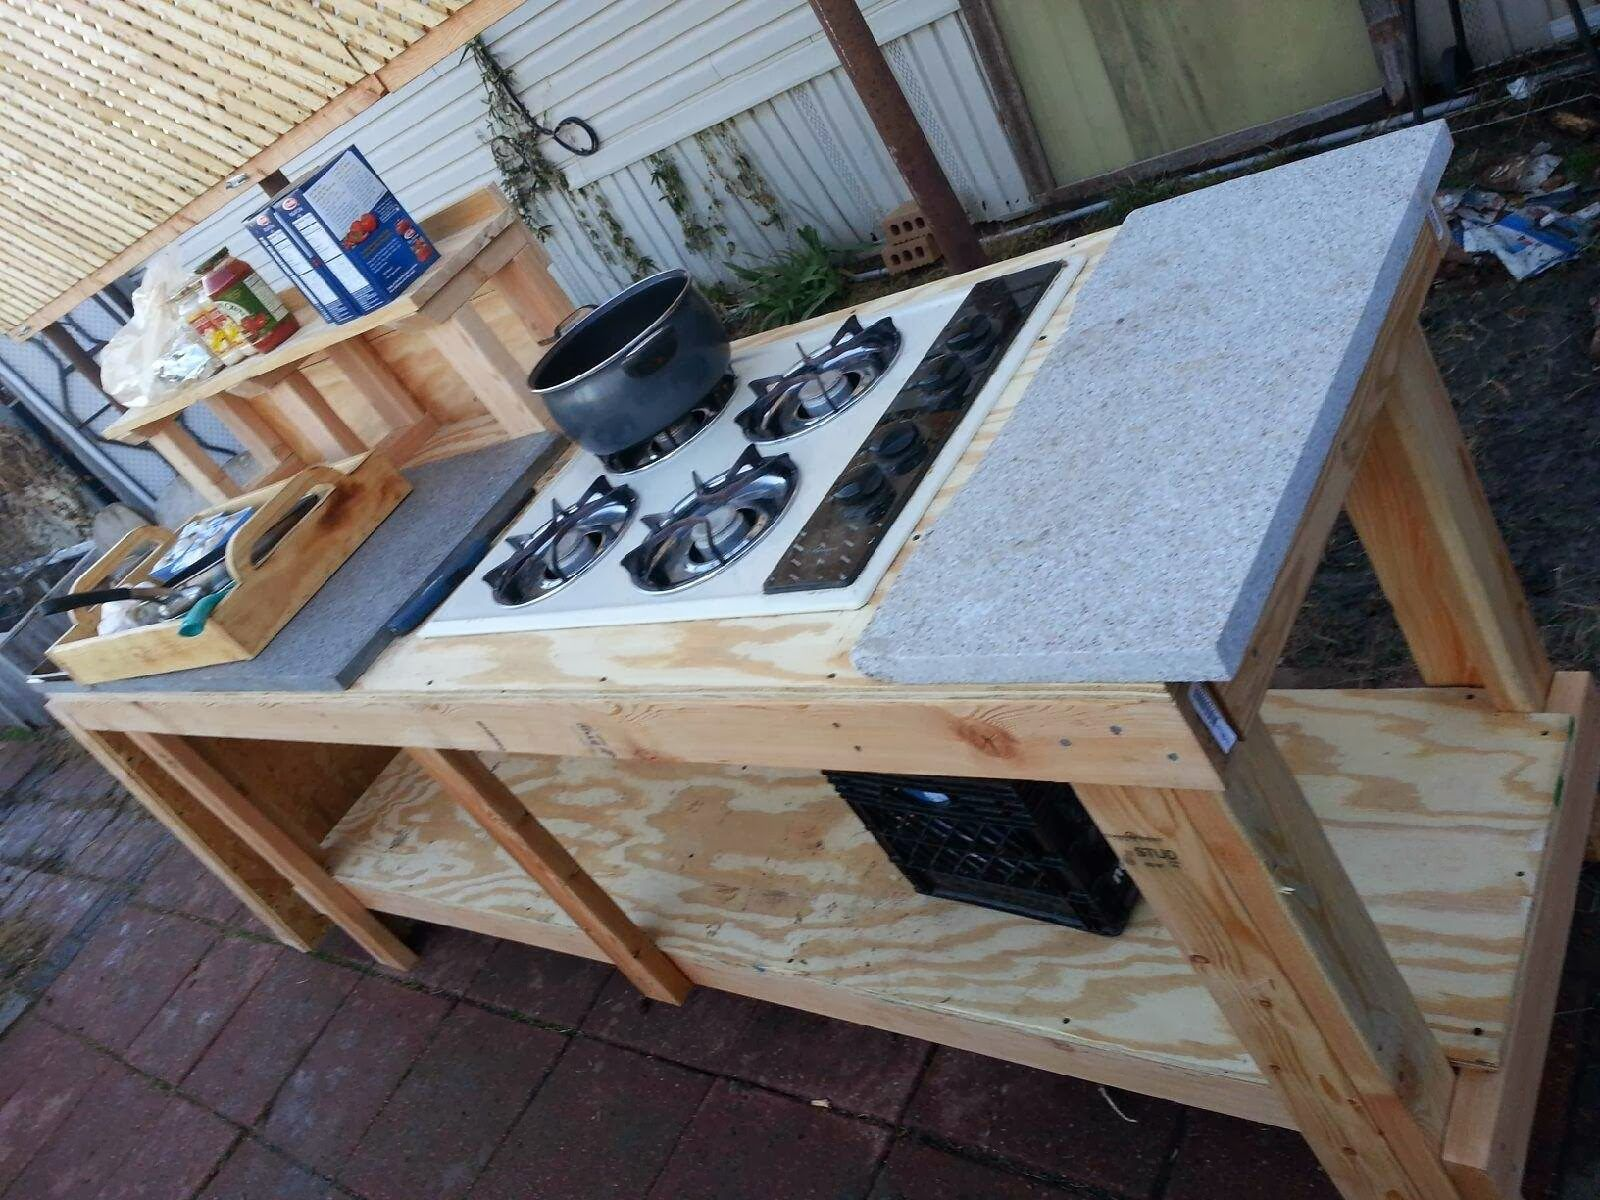 Outdoor Canning Kitchen Plans | On Top Of All That, This Is A Lot More